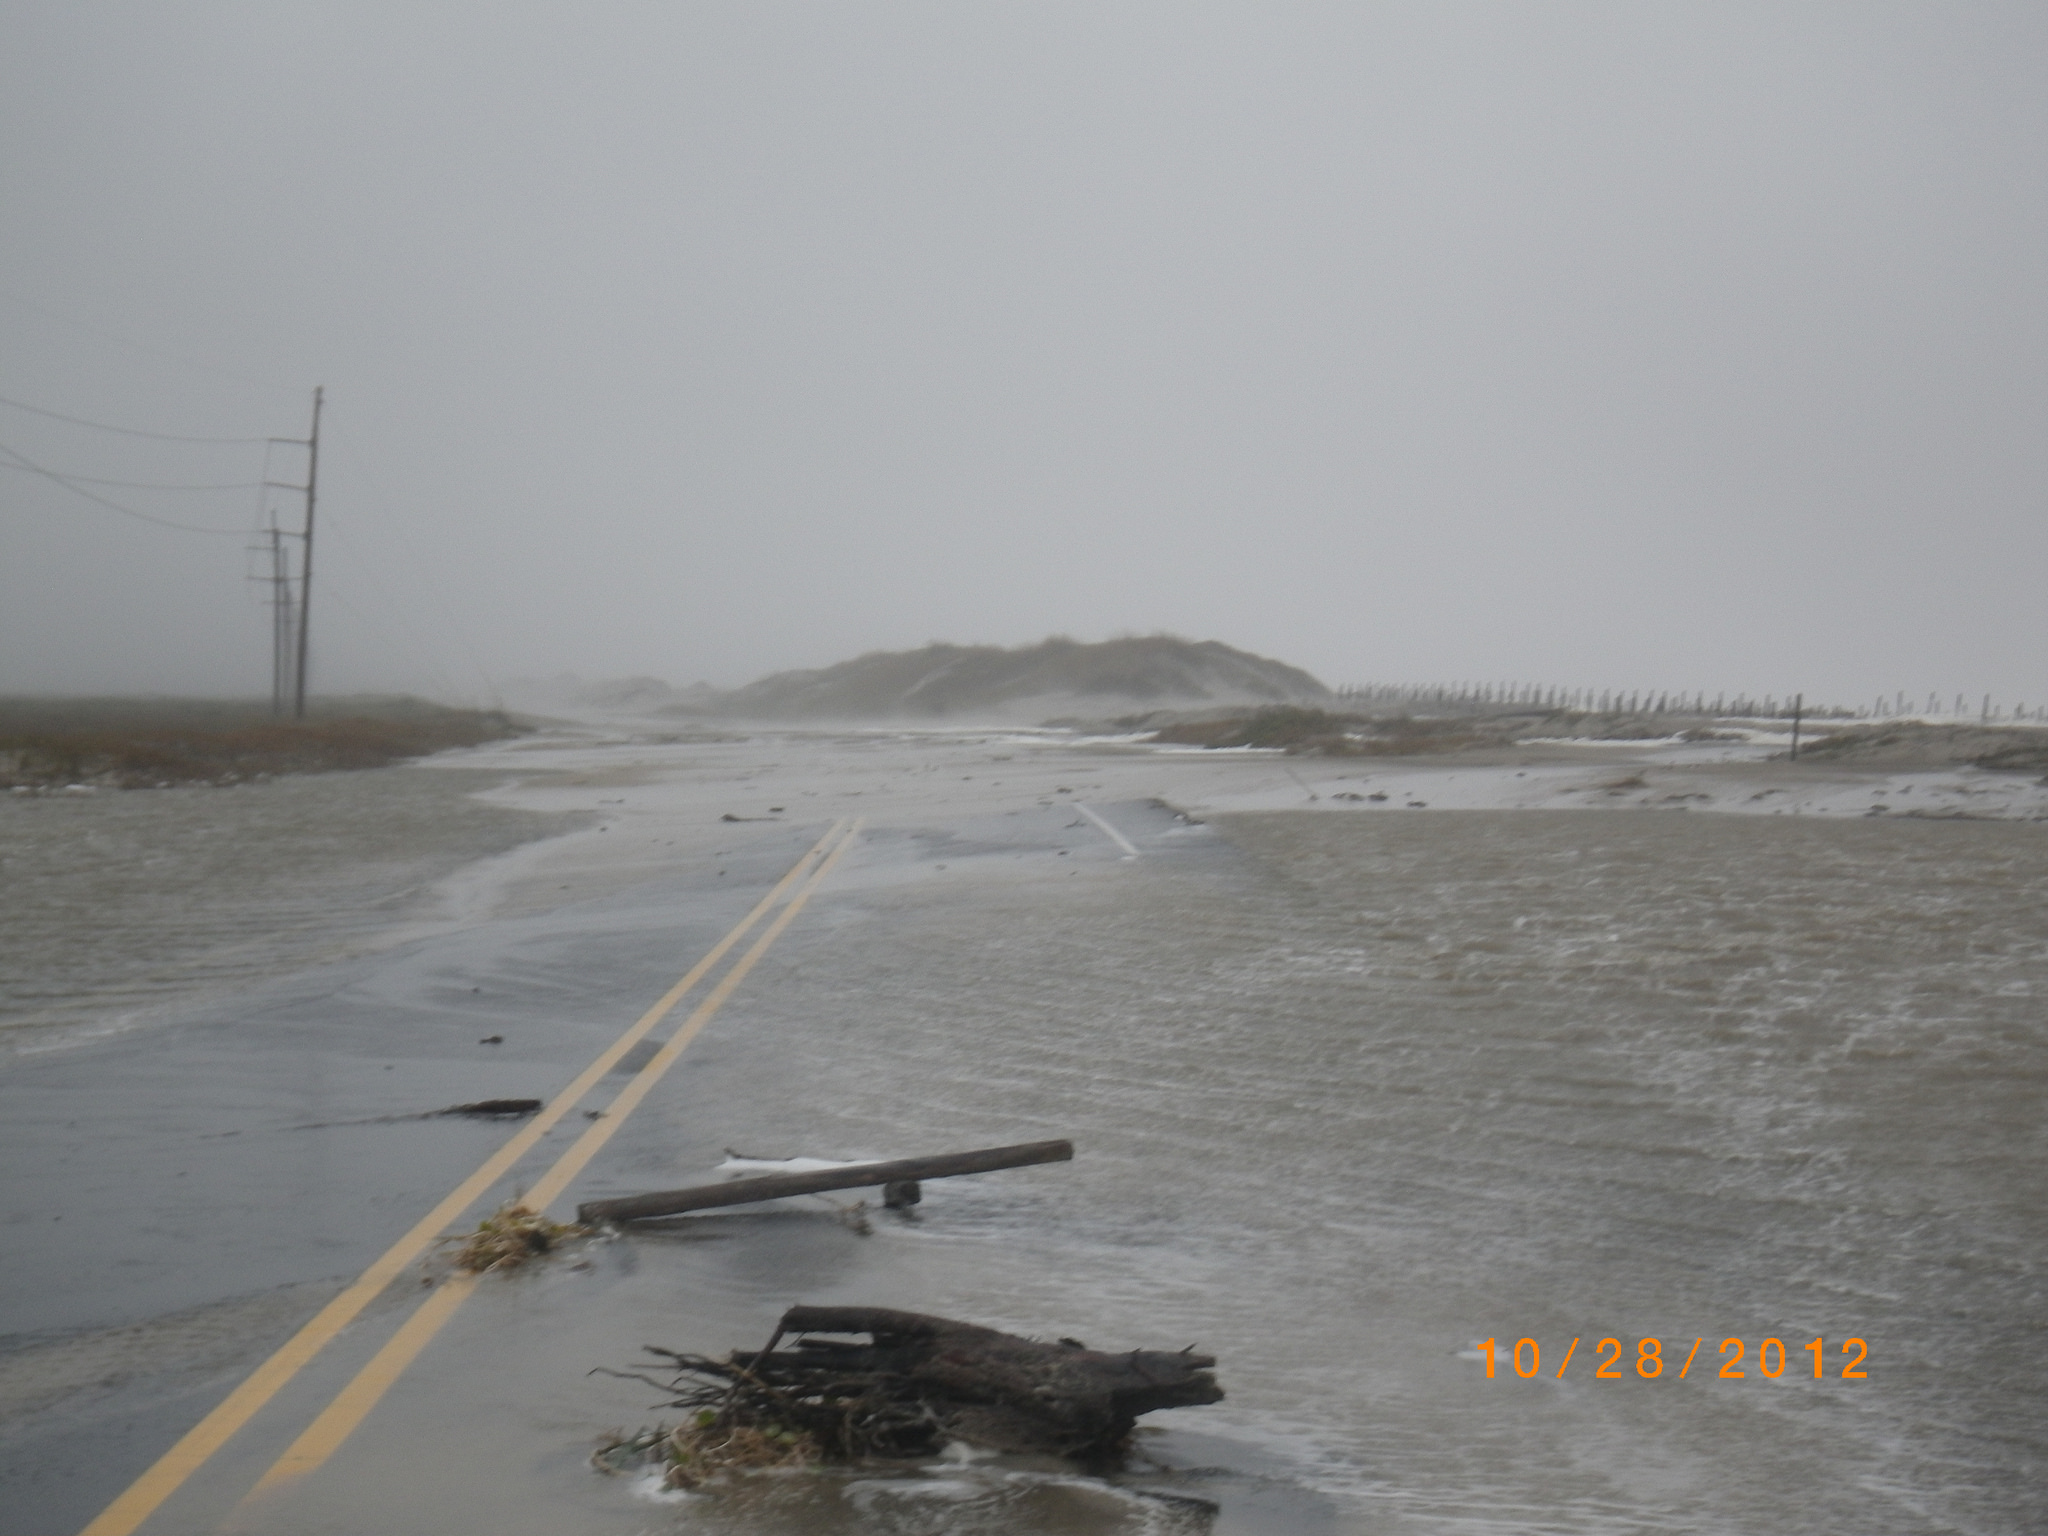 Road covered in water and debris